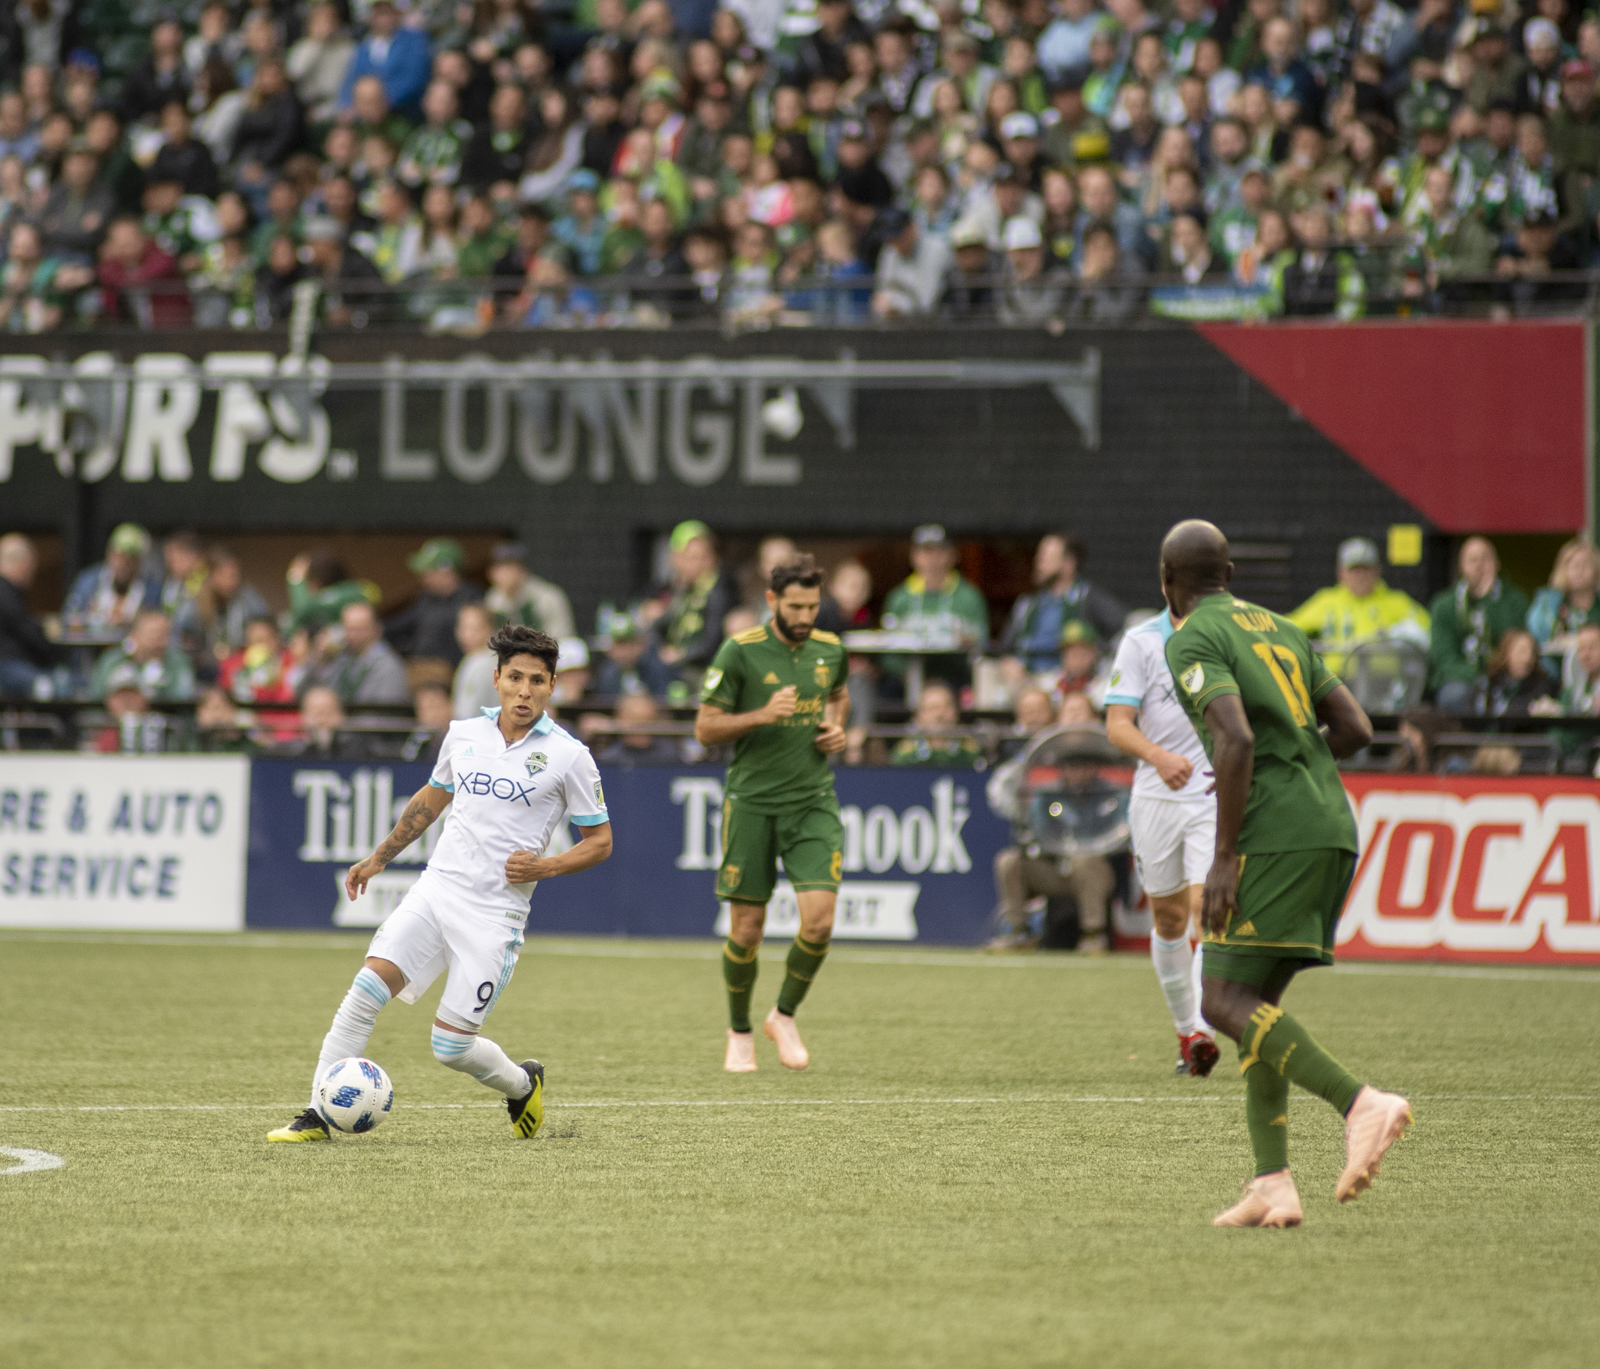 Sounders vs Timber68.jpg